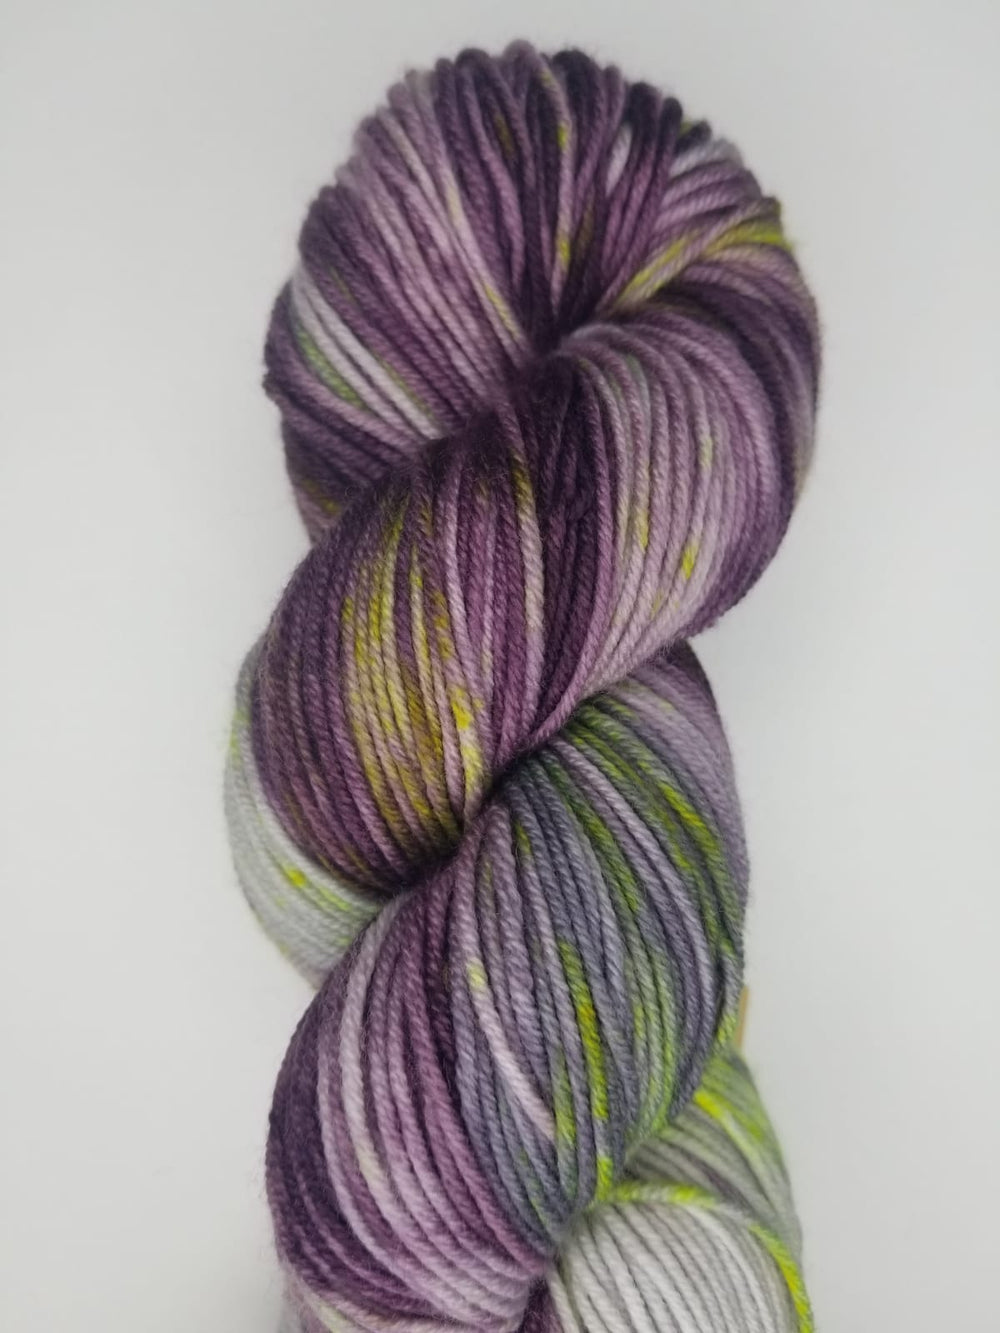 Knitting Loft Exclusive DK